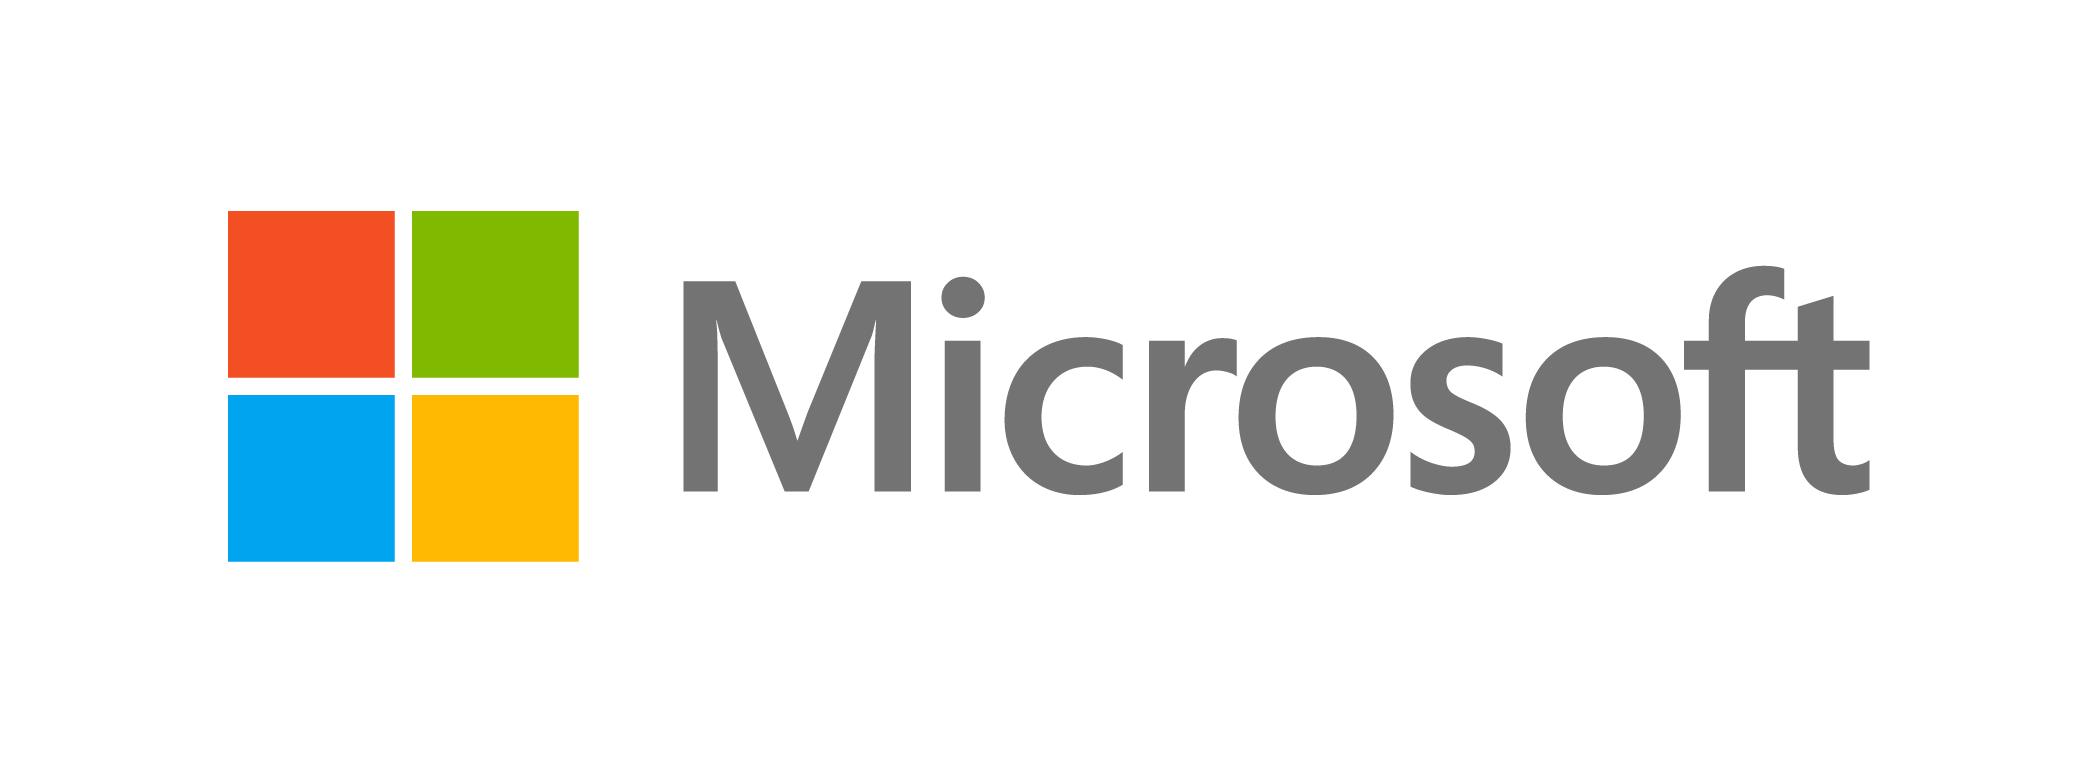 Microsoft - Sharing Minds